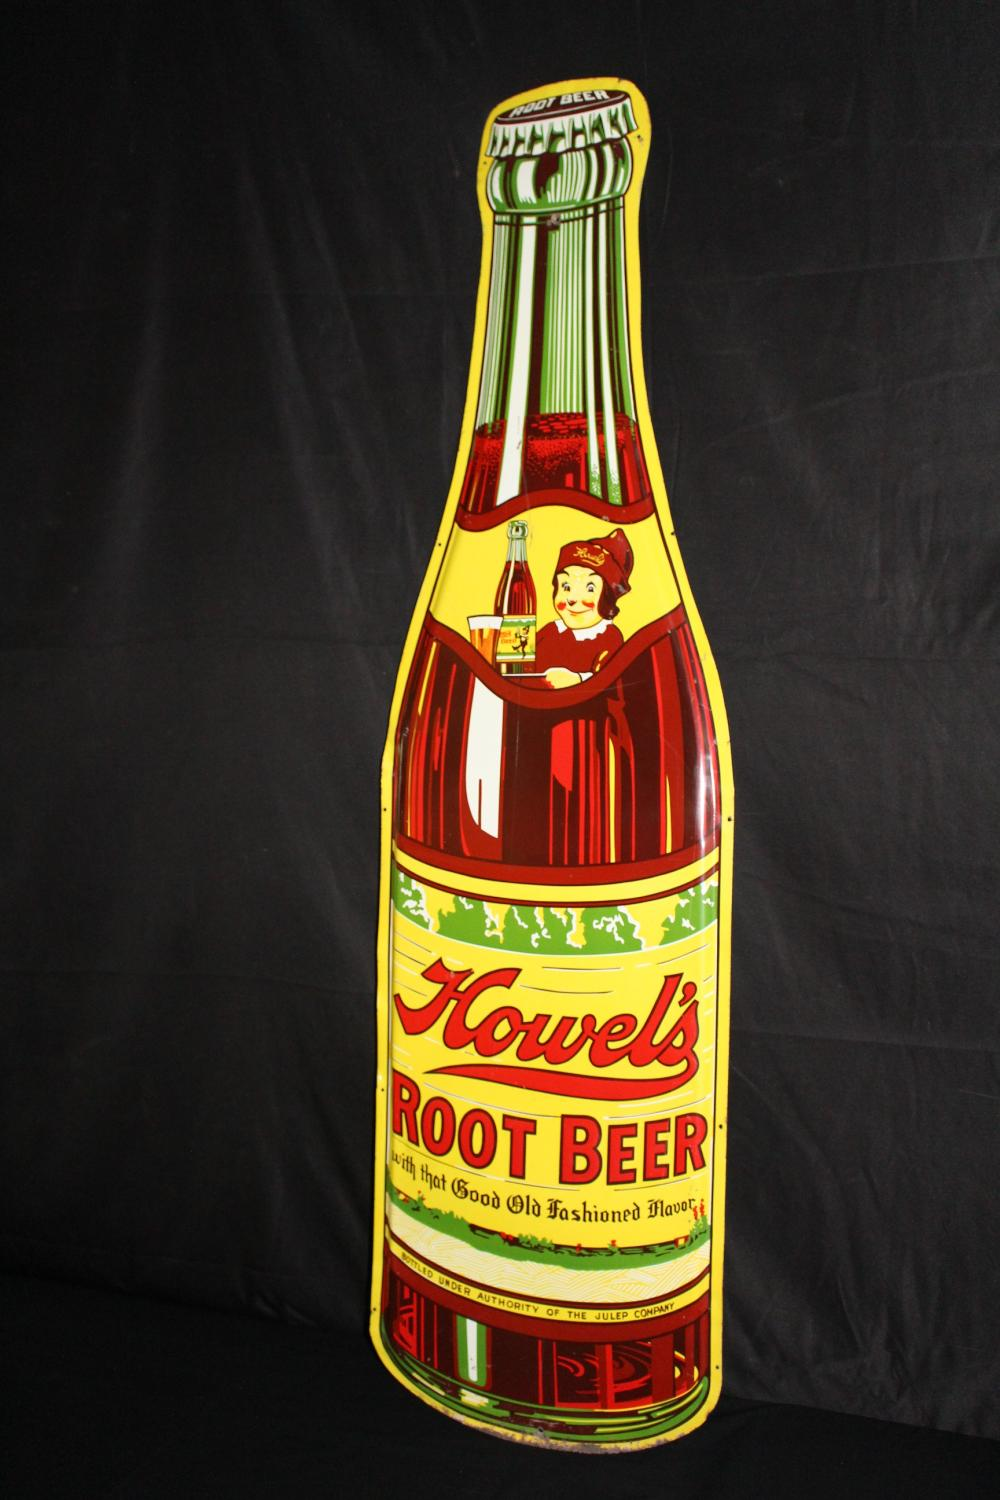 HOWELS ROOT BEER BOTTLE SODA POP BOTTLE TIN SIGN